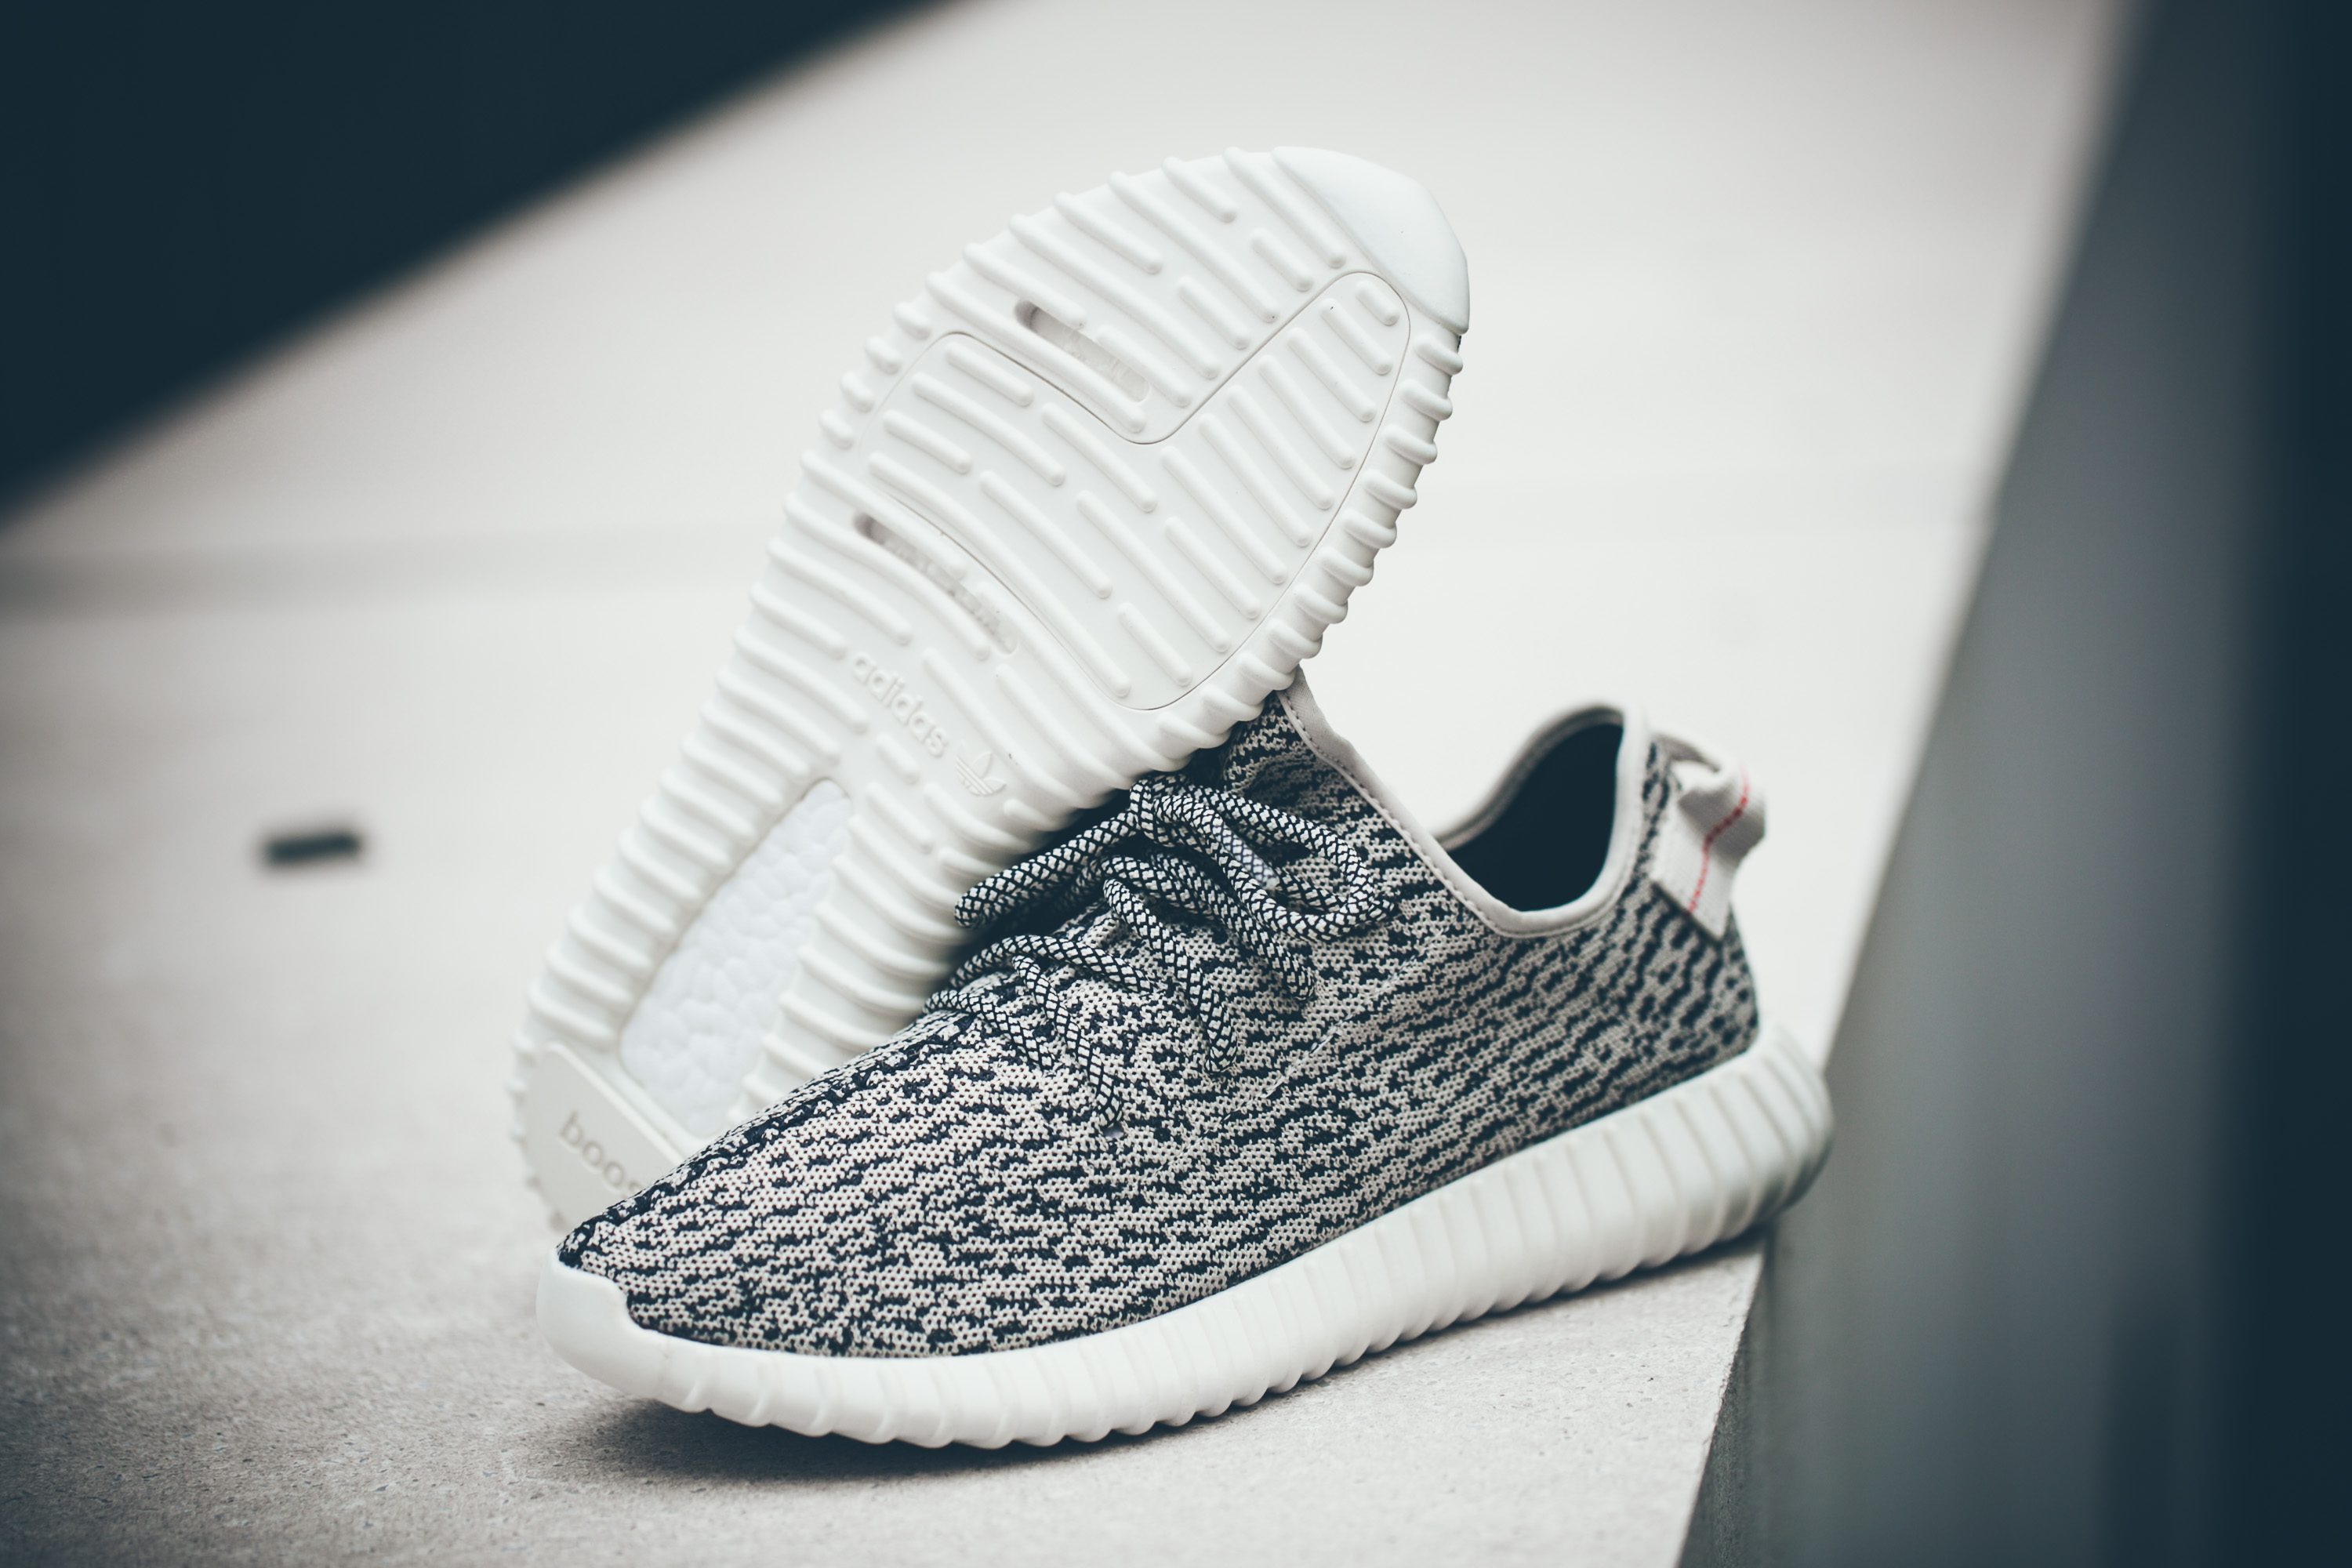 adidas consortium x kanye west yeezy 350 boost low